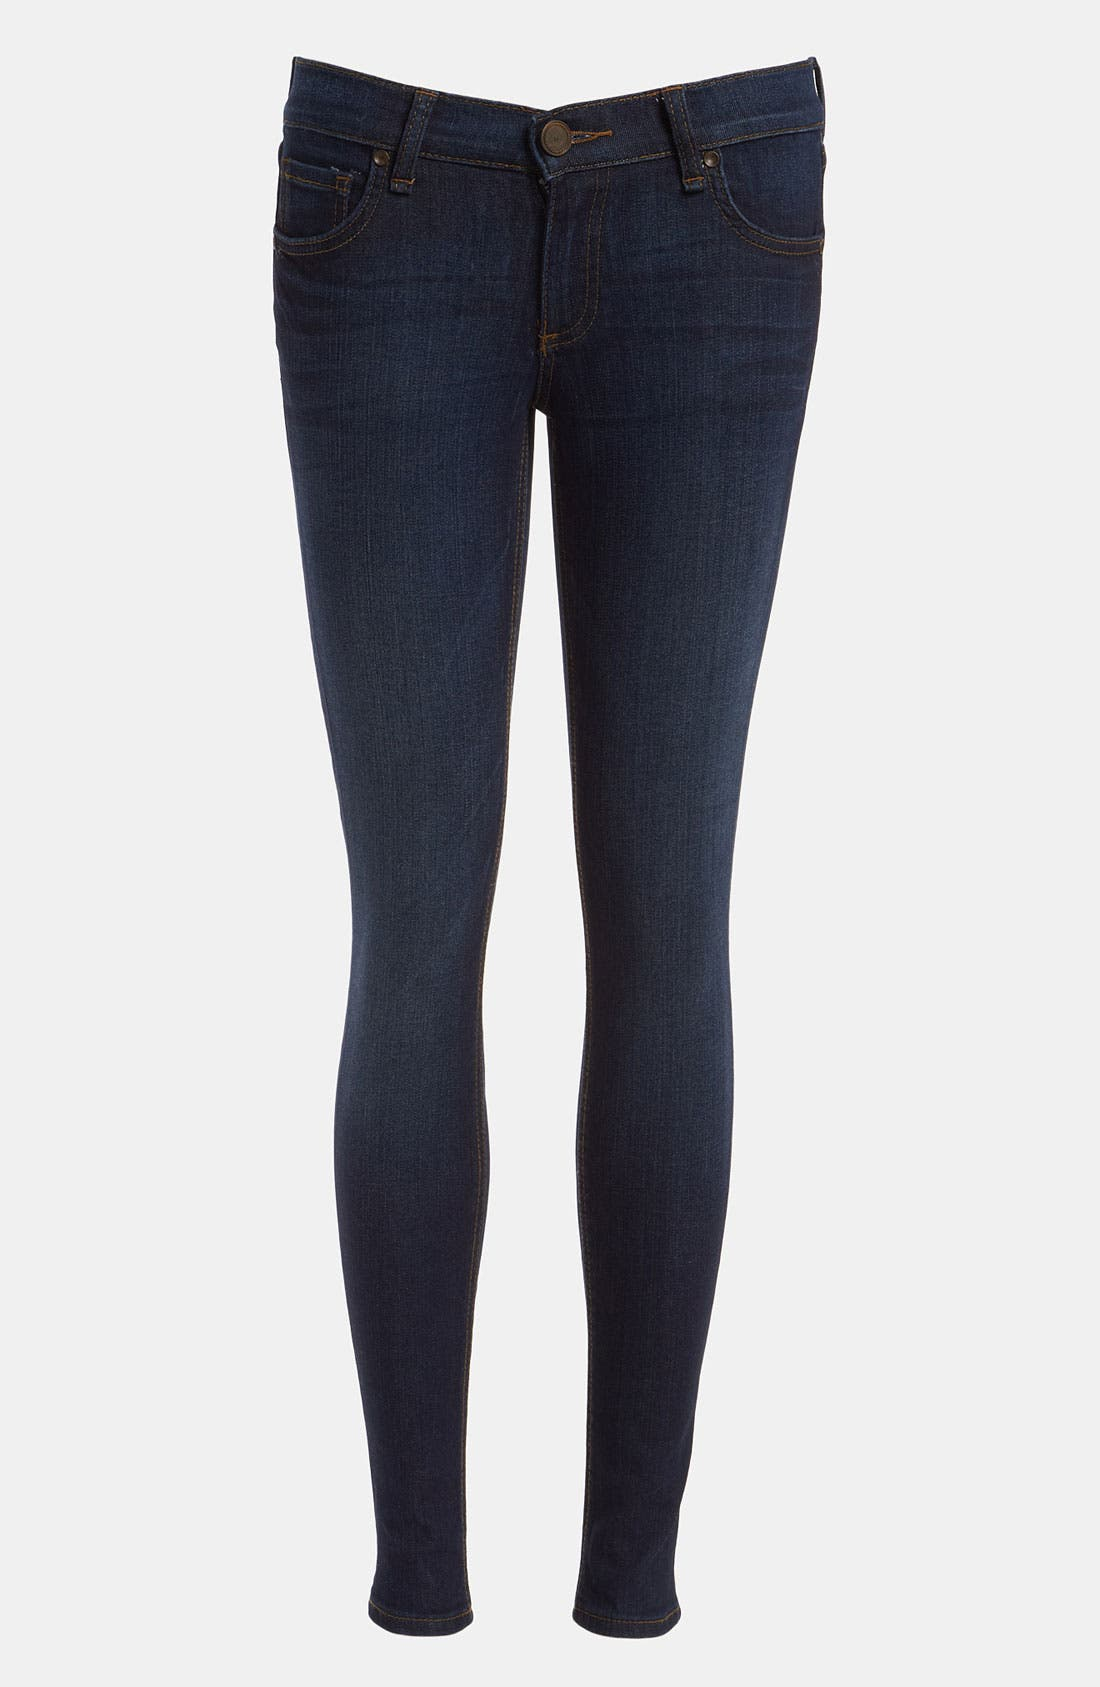 Alternate Image 1 Selected - edyson 'Sloan' Skinny Jeans (Dark Atlantic)